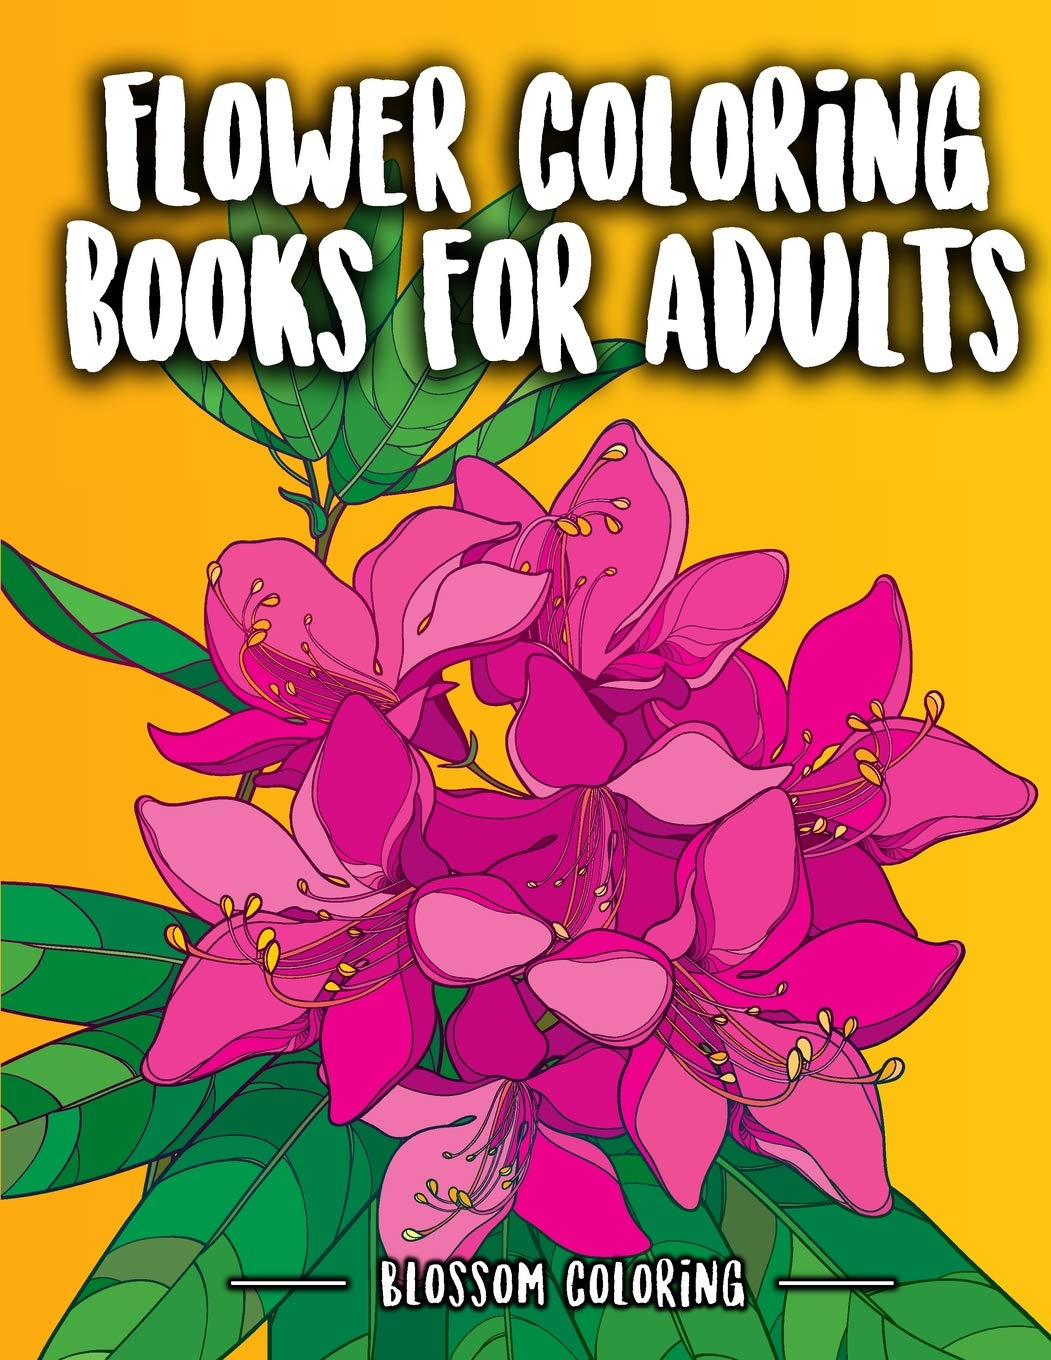 Amazon.com: Flower Coloring Books for Adults: Flowers ...